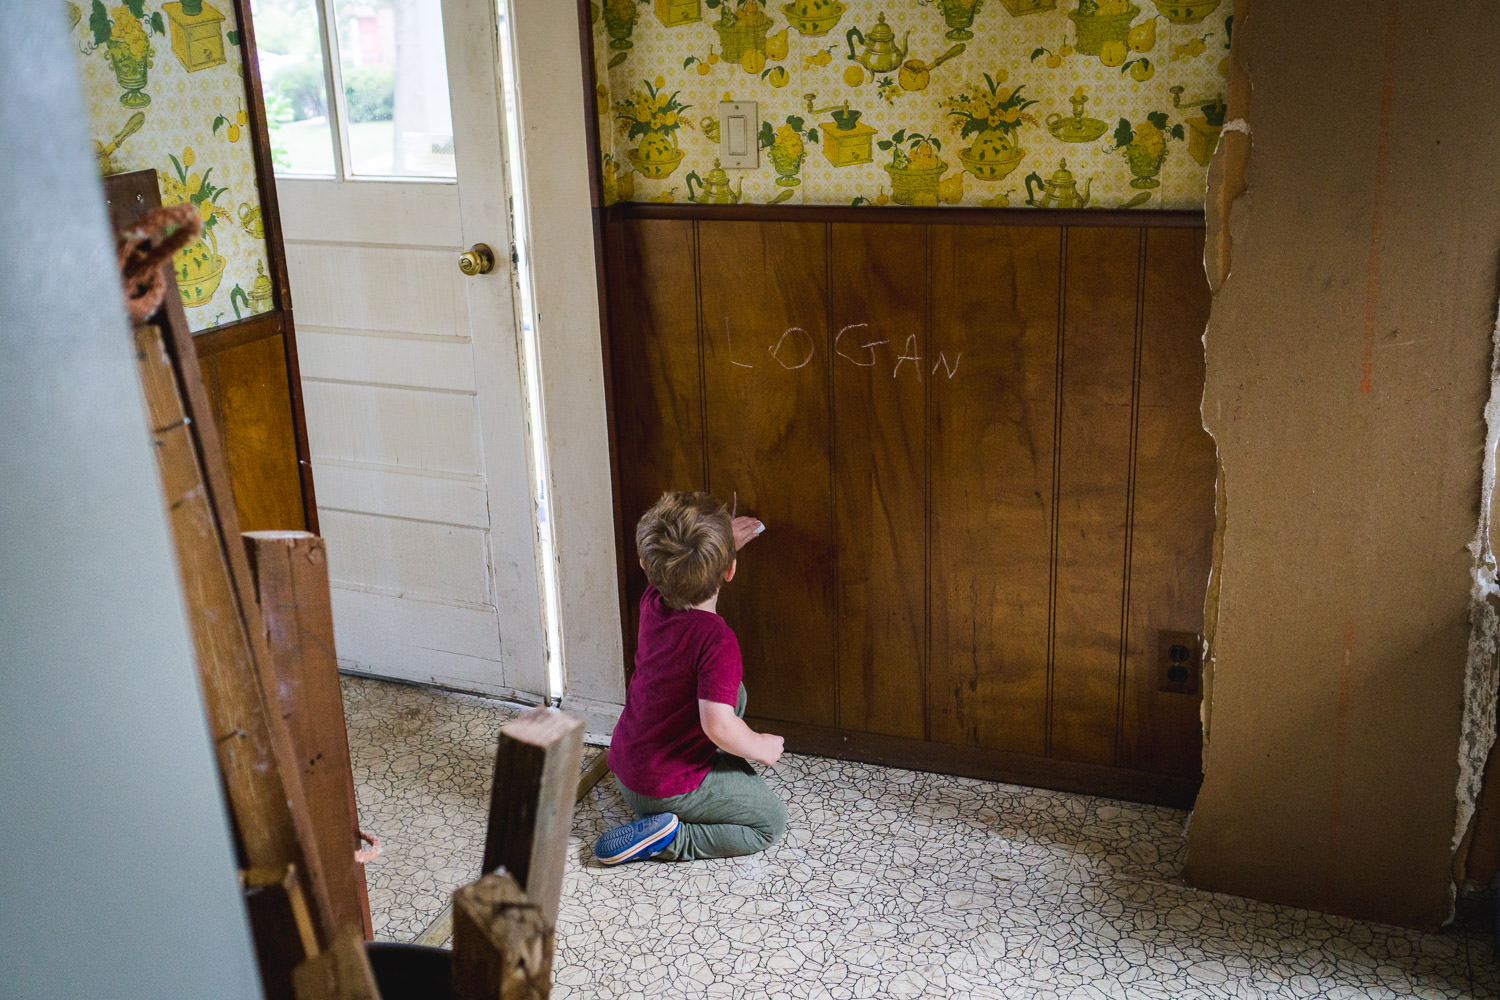 A little boy writes on the wall of an old house with some chalk.